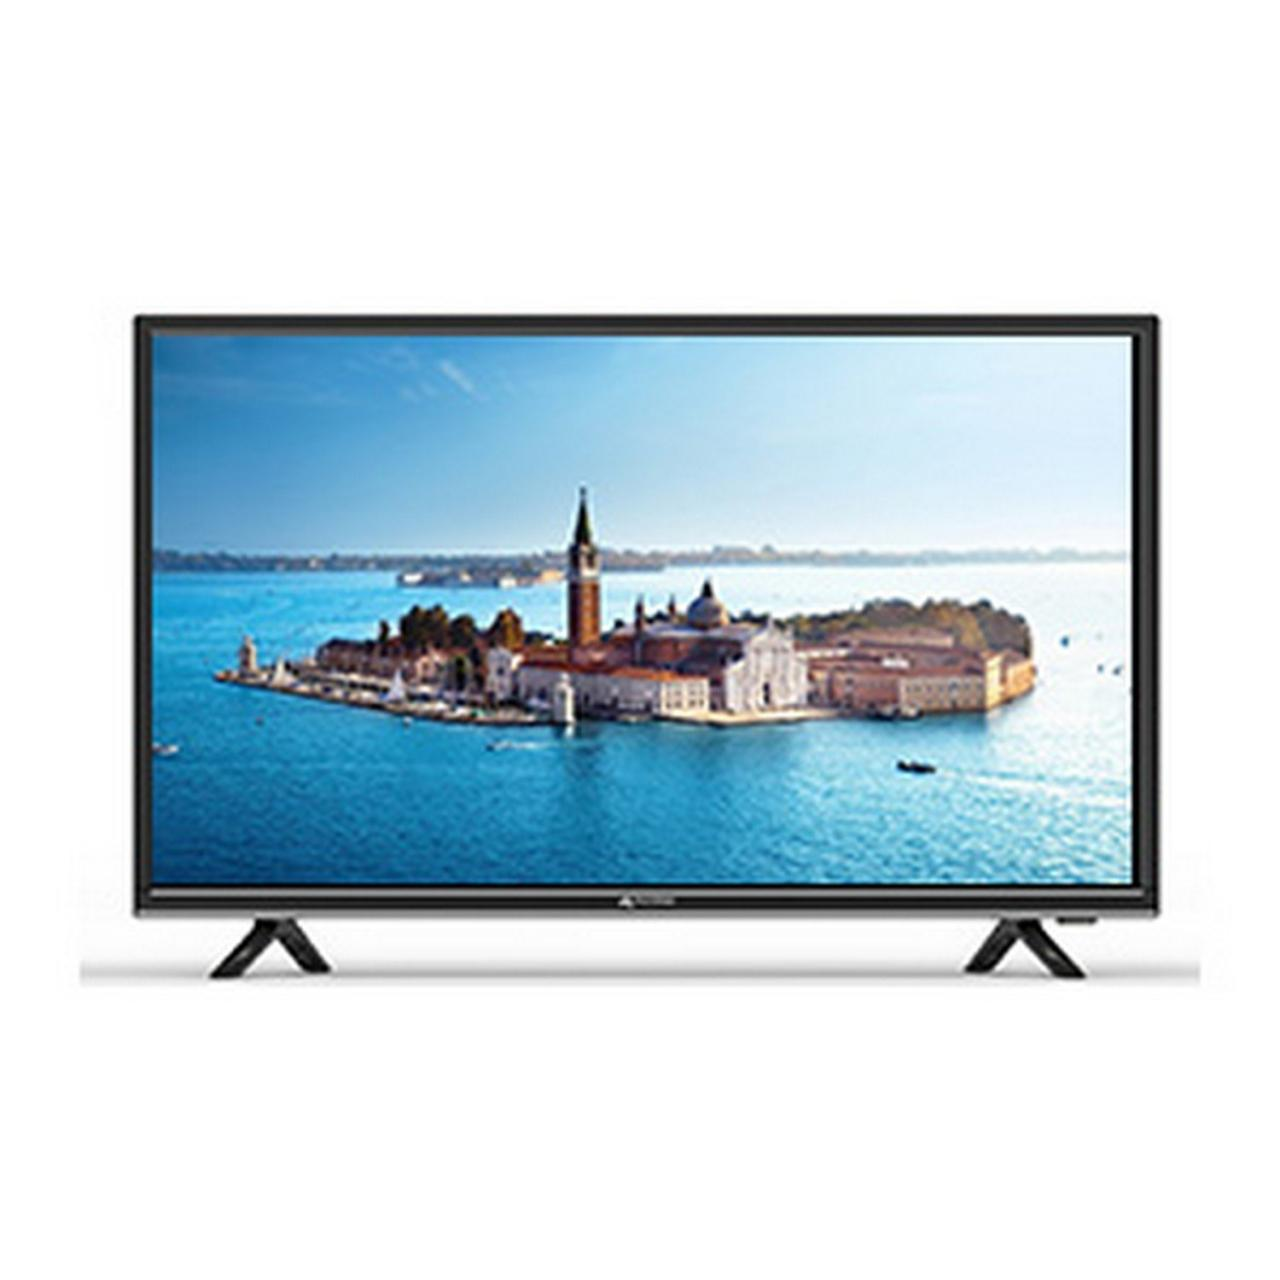 lg vs samsung led tv comparison reviewsellers. Black Bedroom Furniture Sets. Home Design Ideas